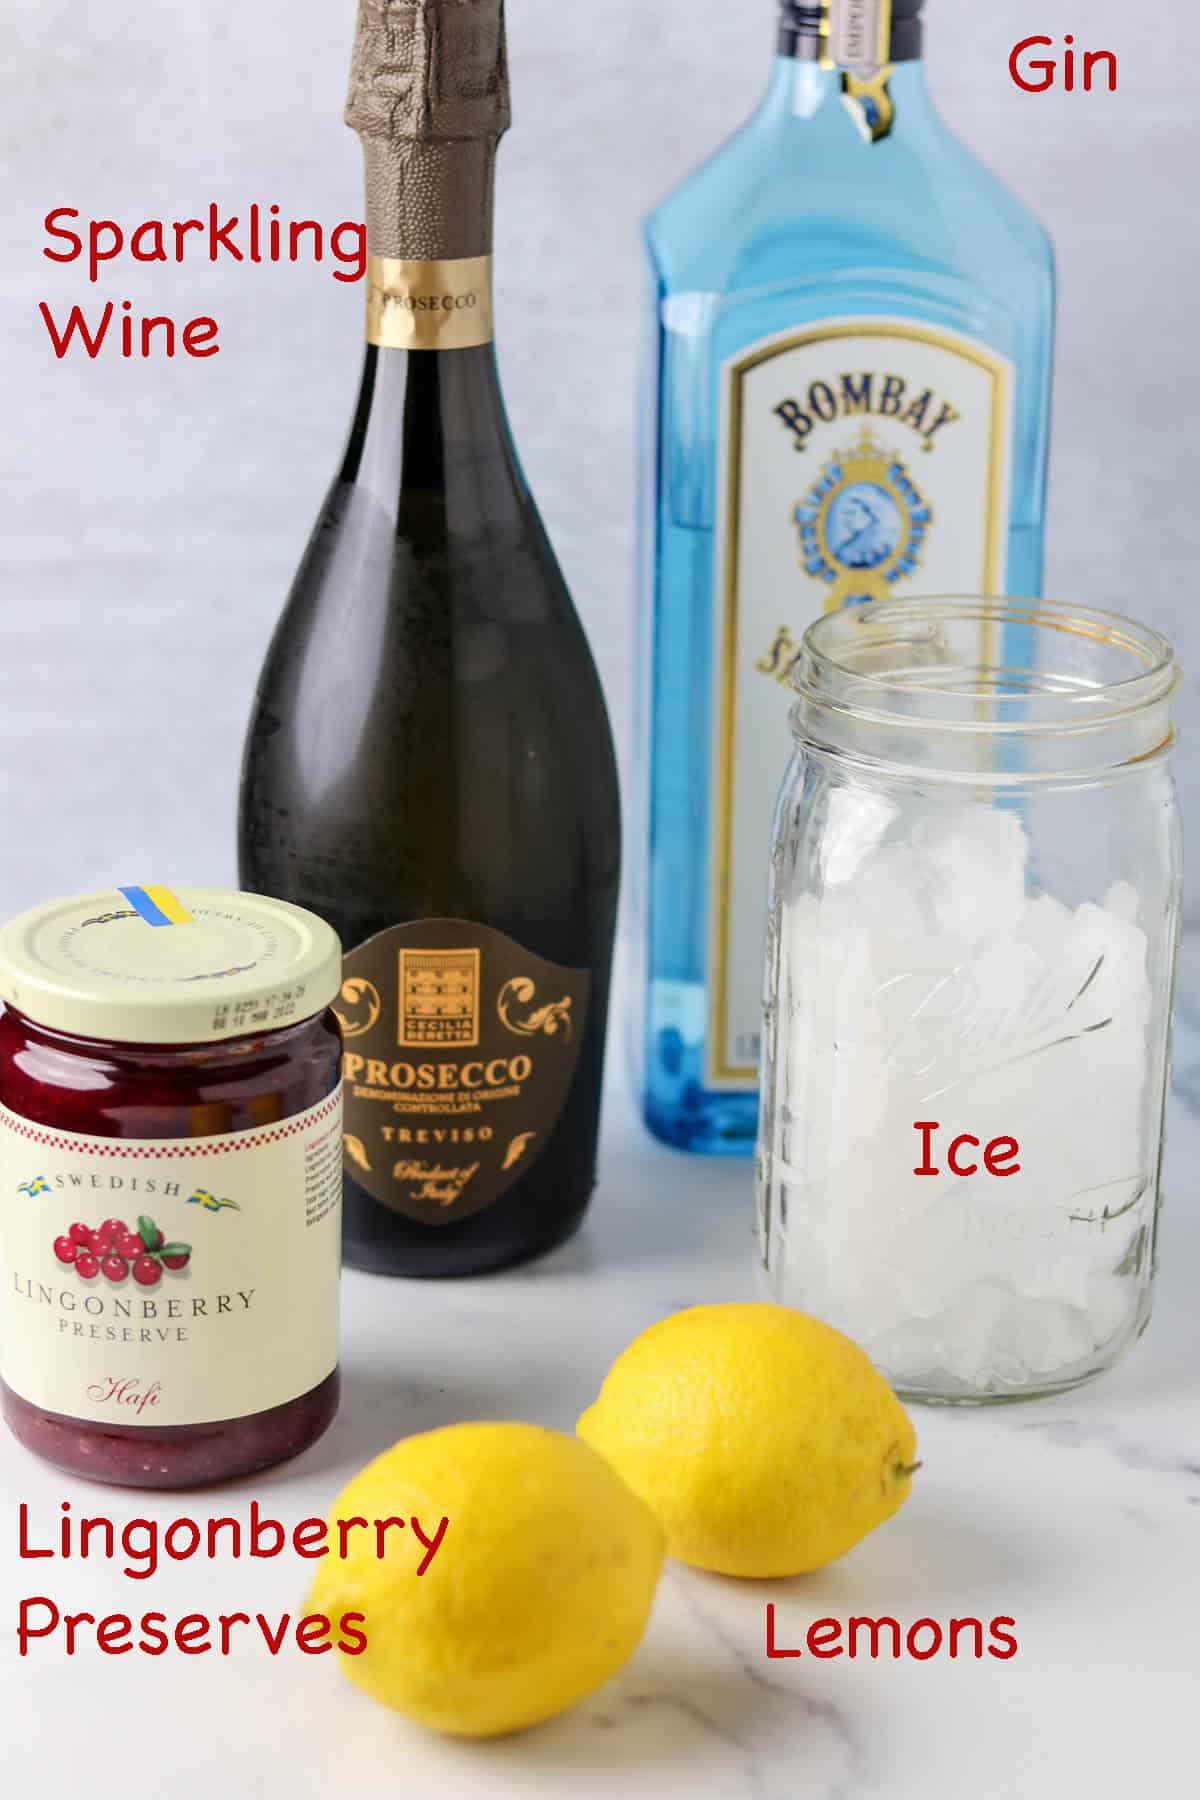 Labeled ingredients for the Swedish 75 cocktail.